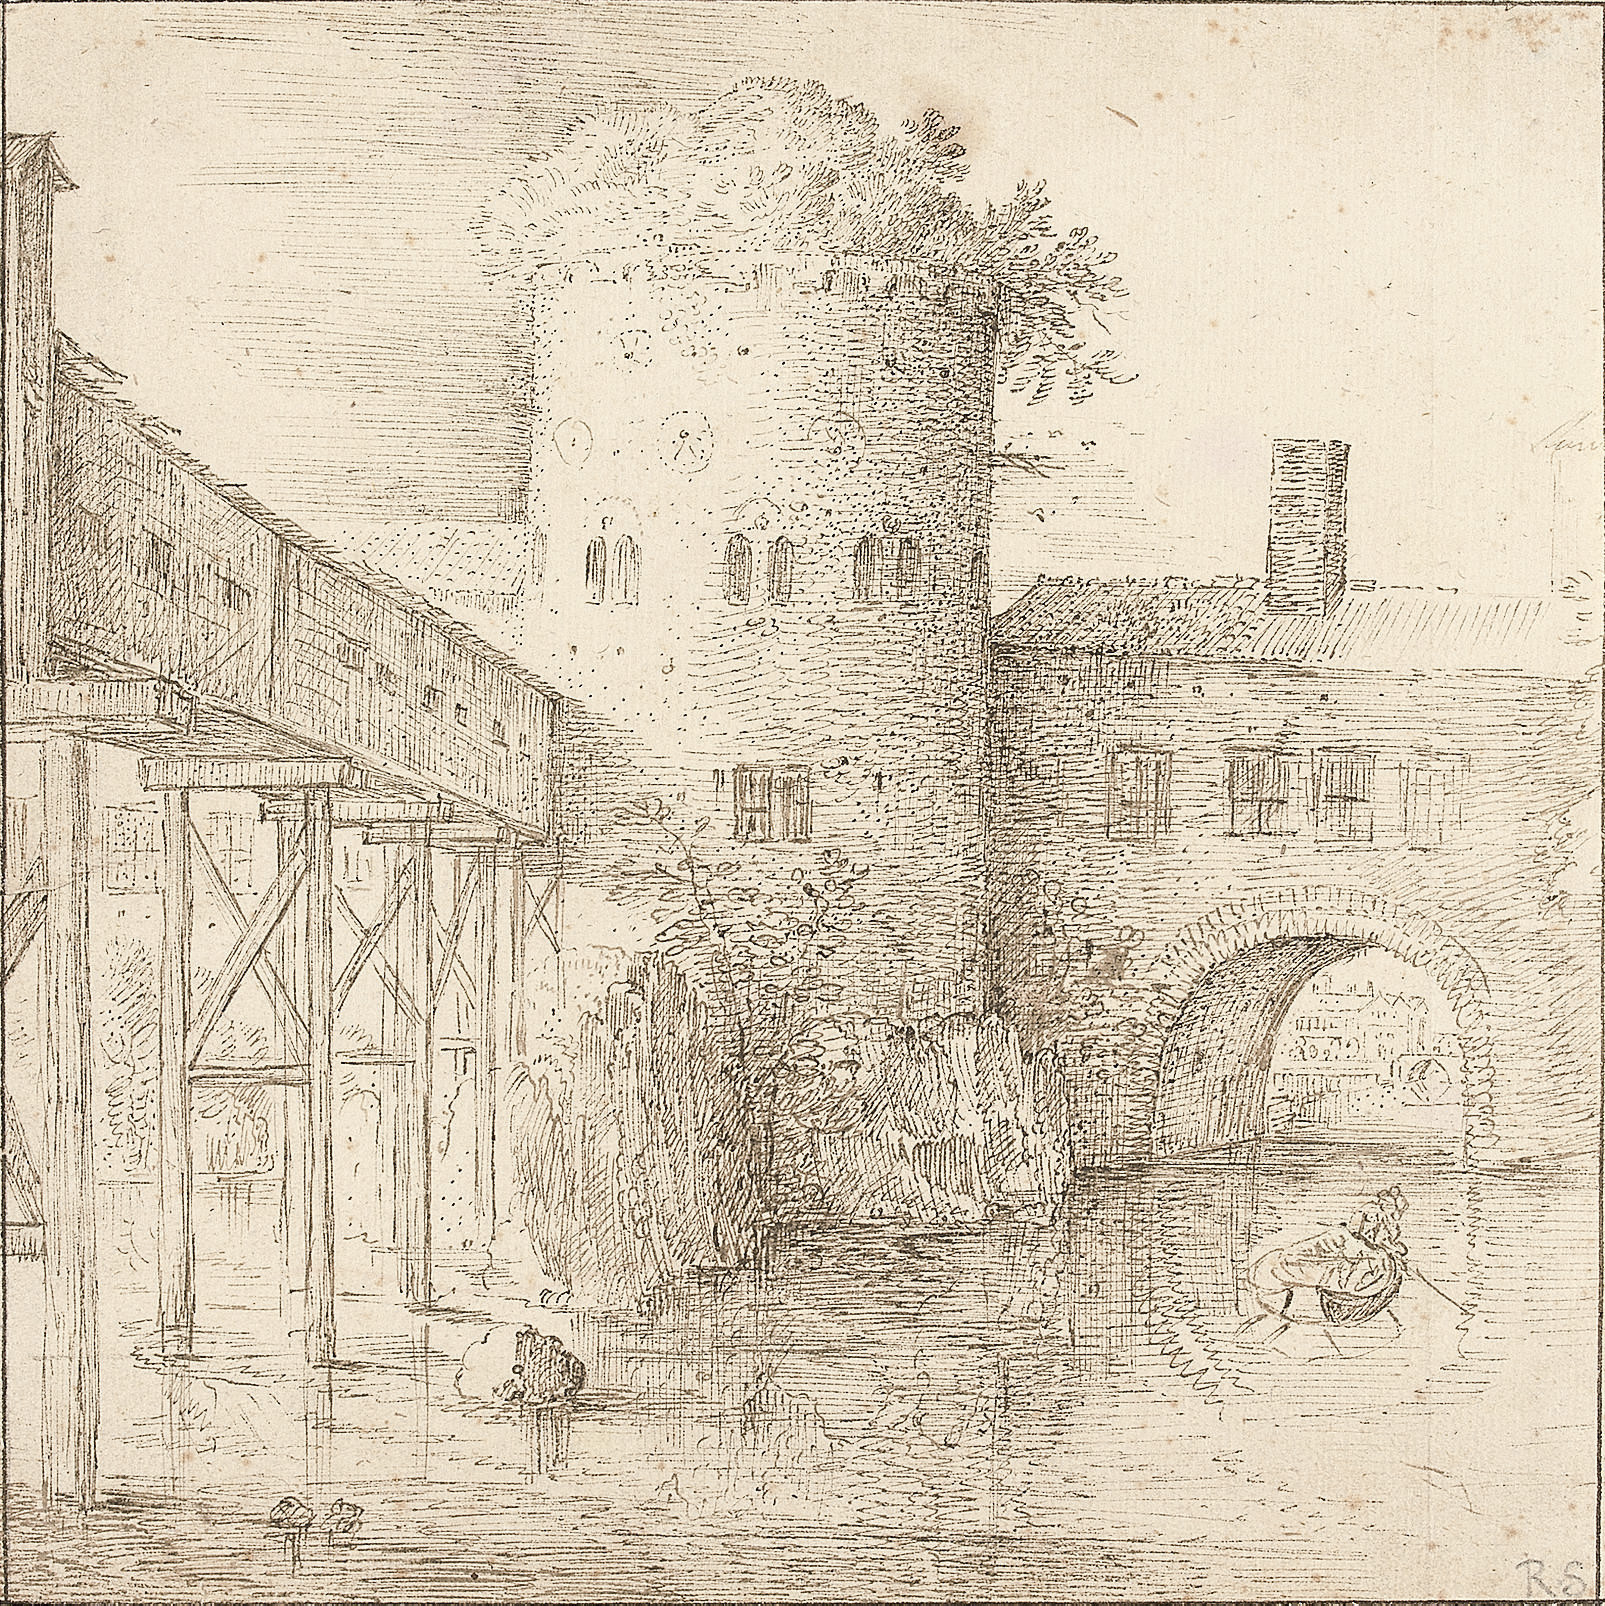 A mill with a fortified bridge, a rowing boat in the foreground